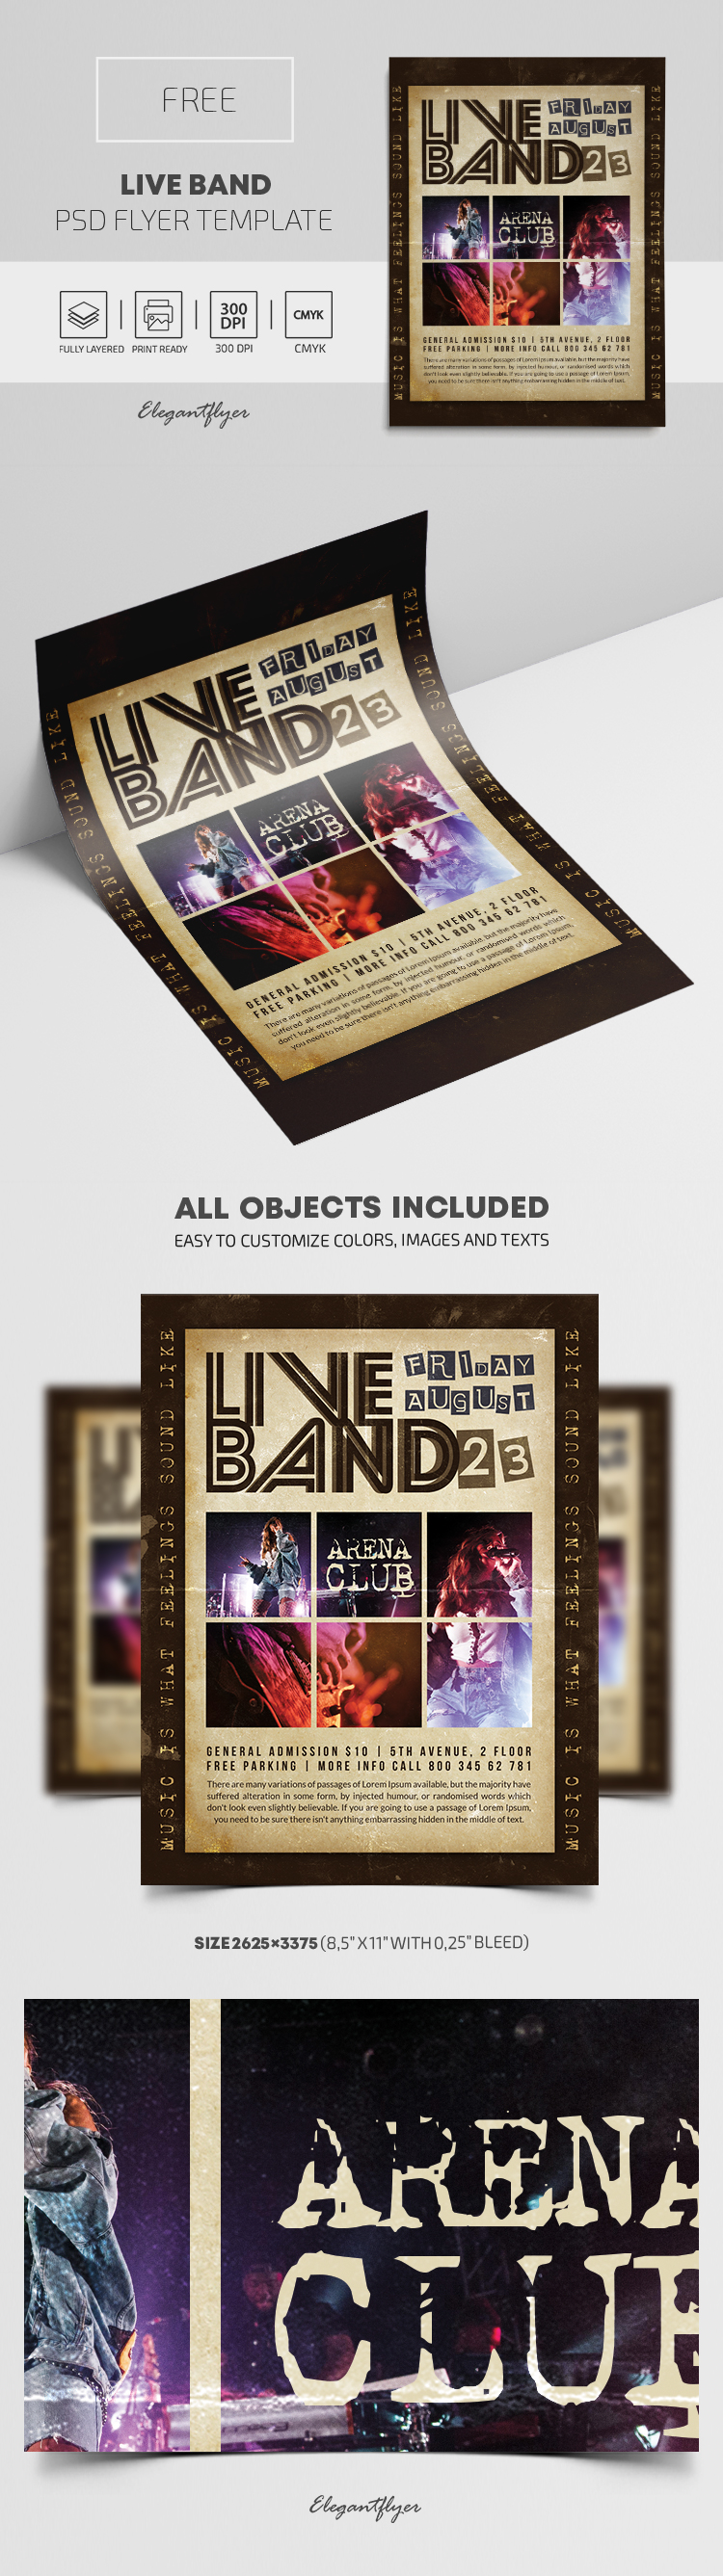 Live Band – Free PSD Flyer Template